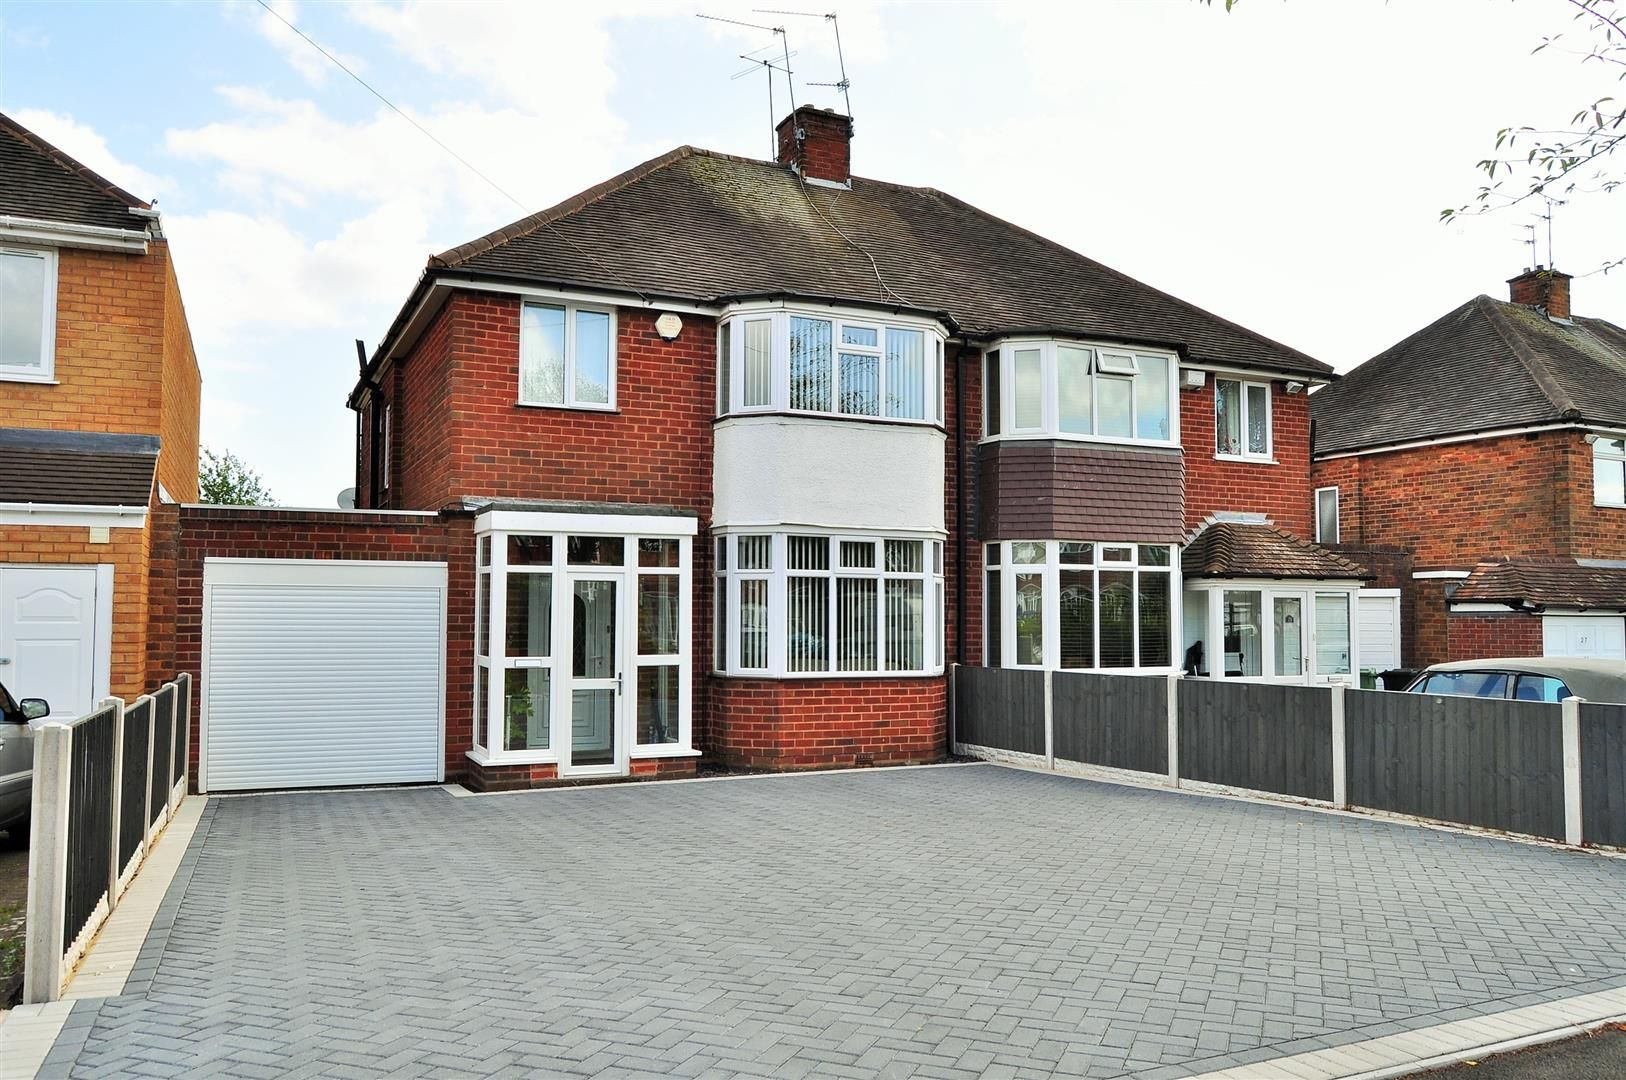 3 bed semi-detached for sale 1